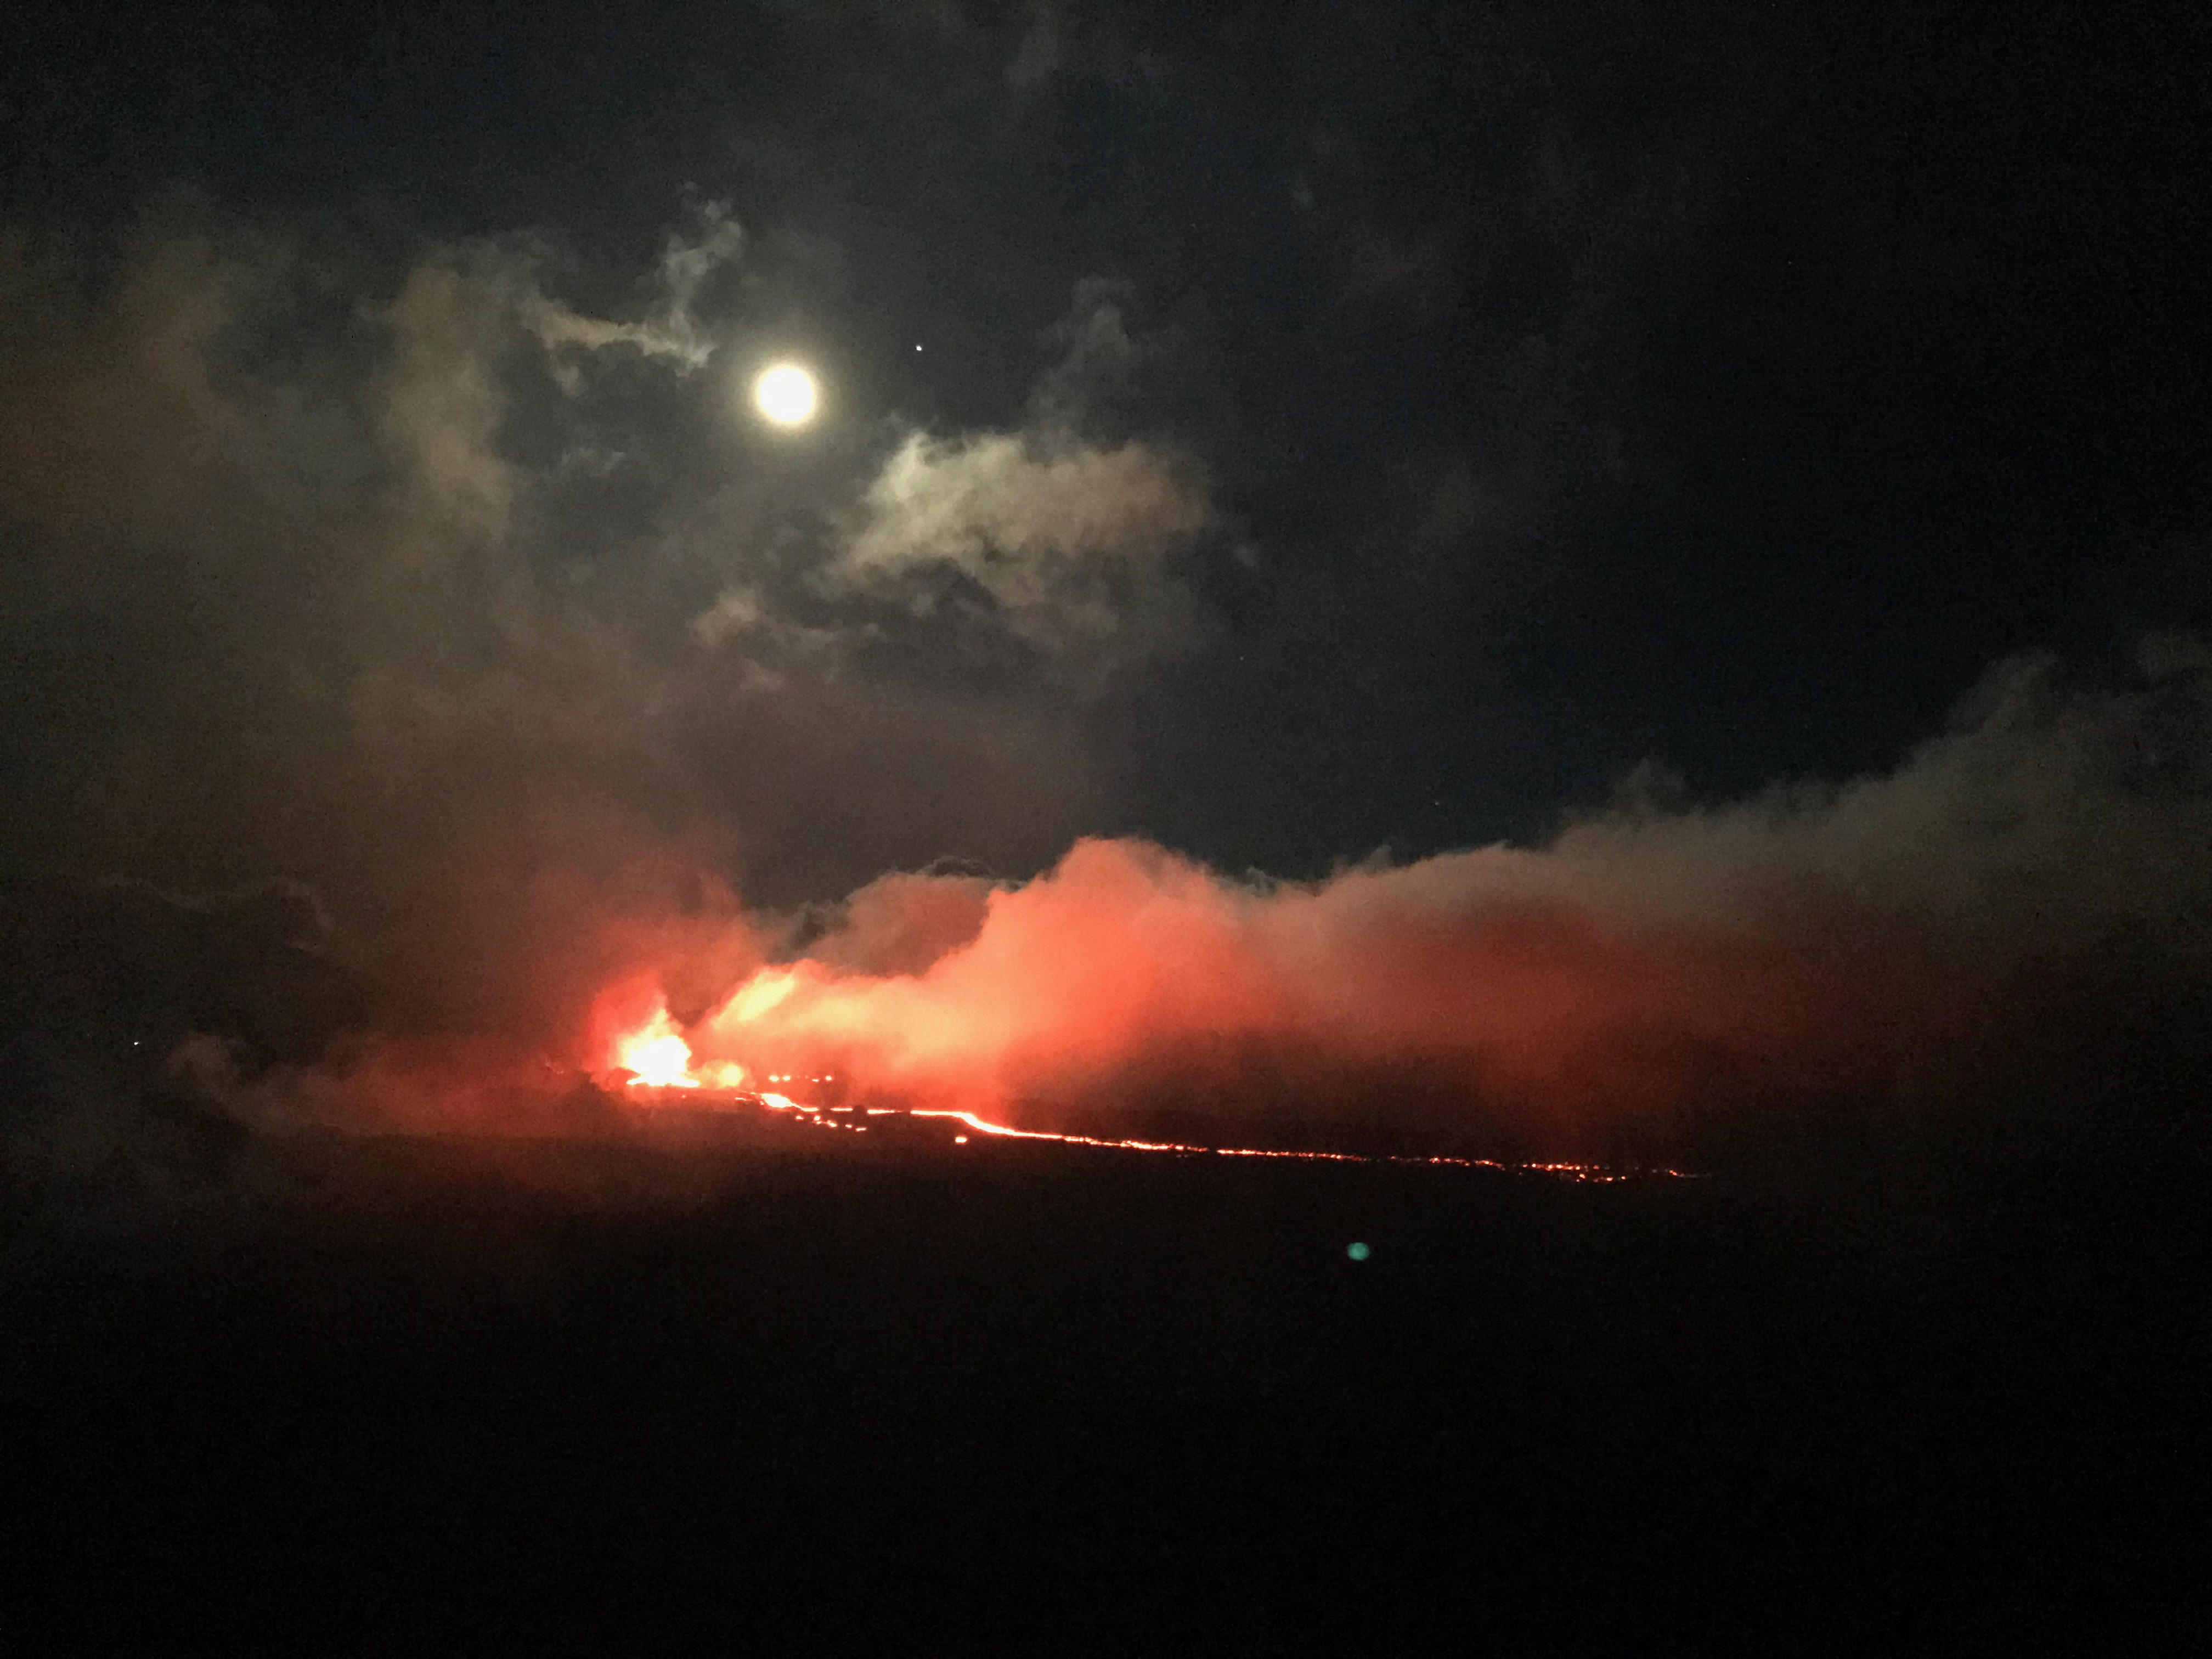 Eruption-fournaise-300418